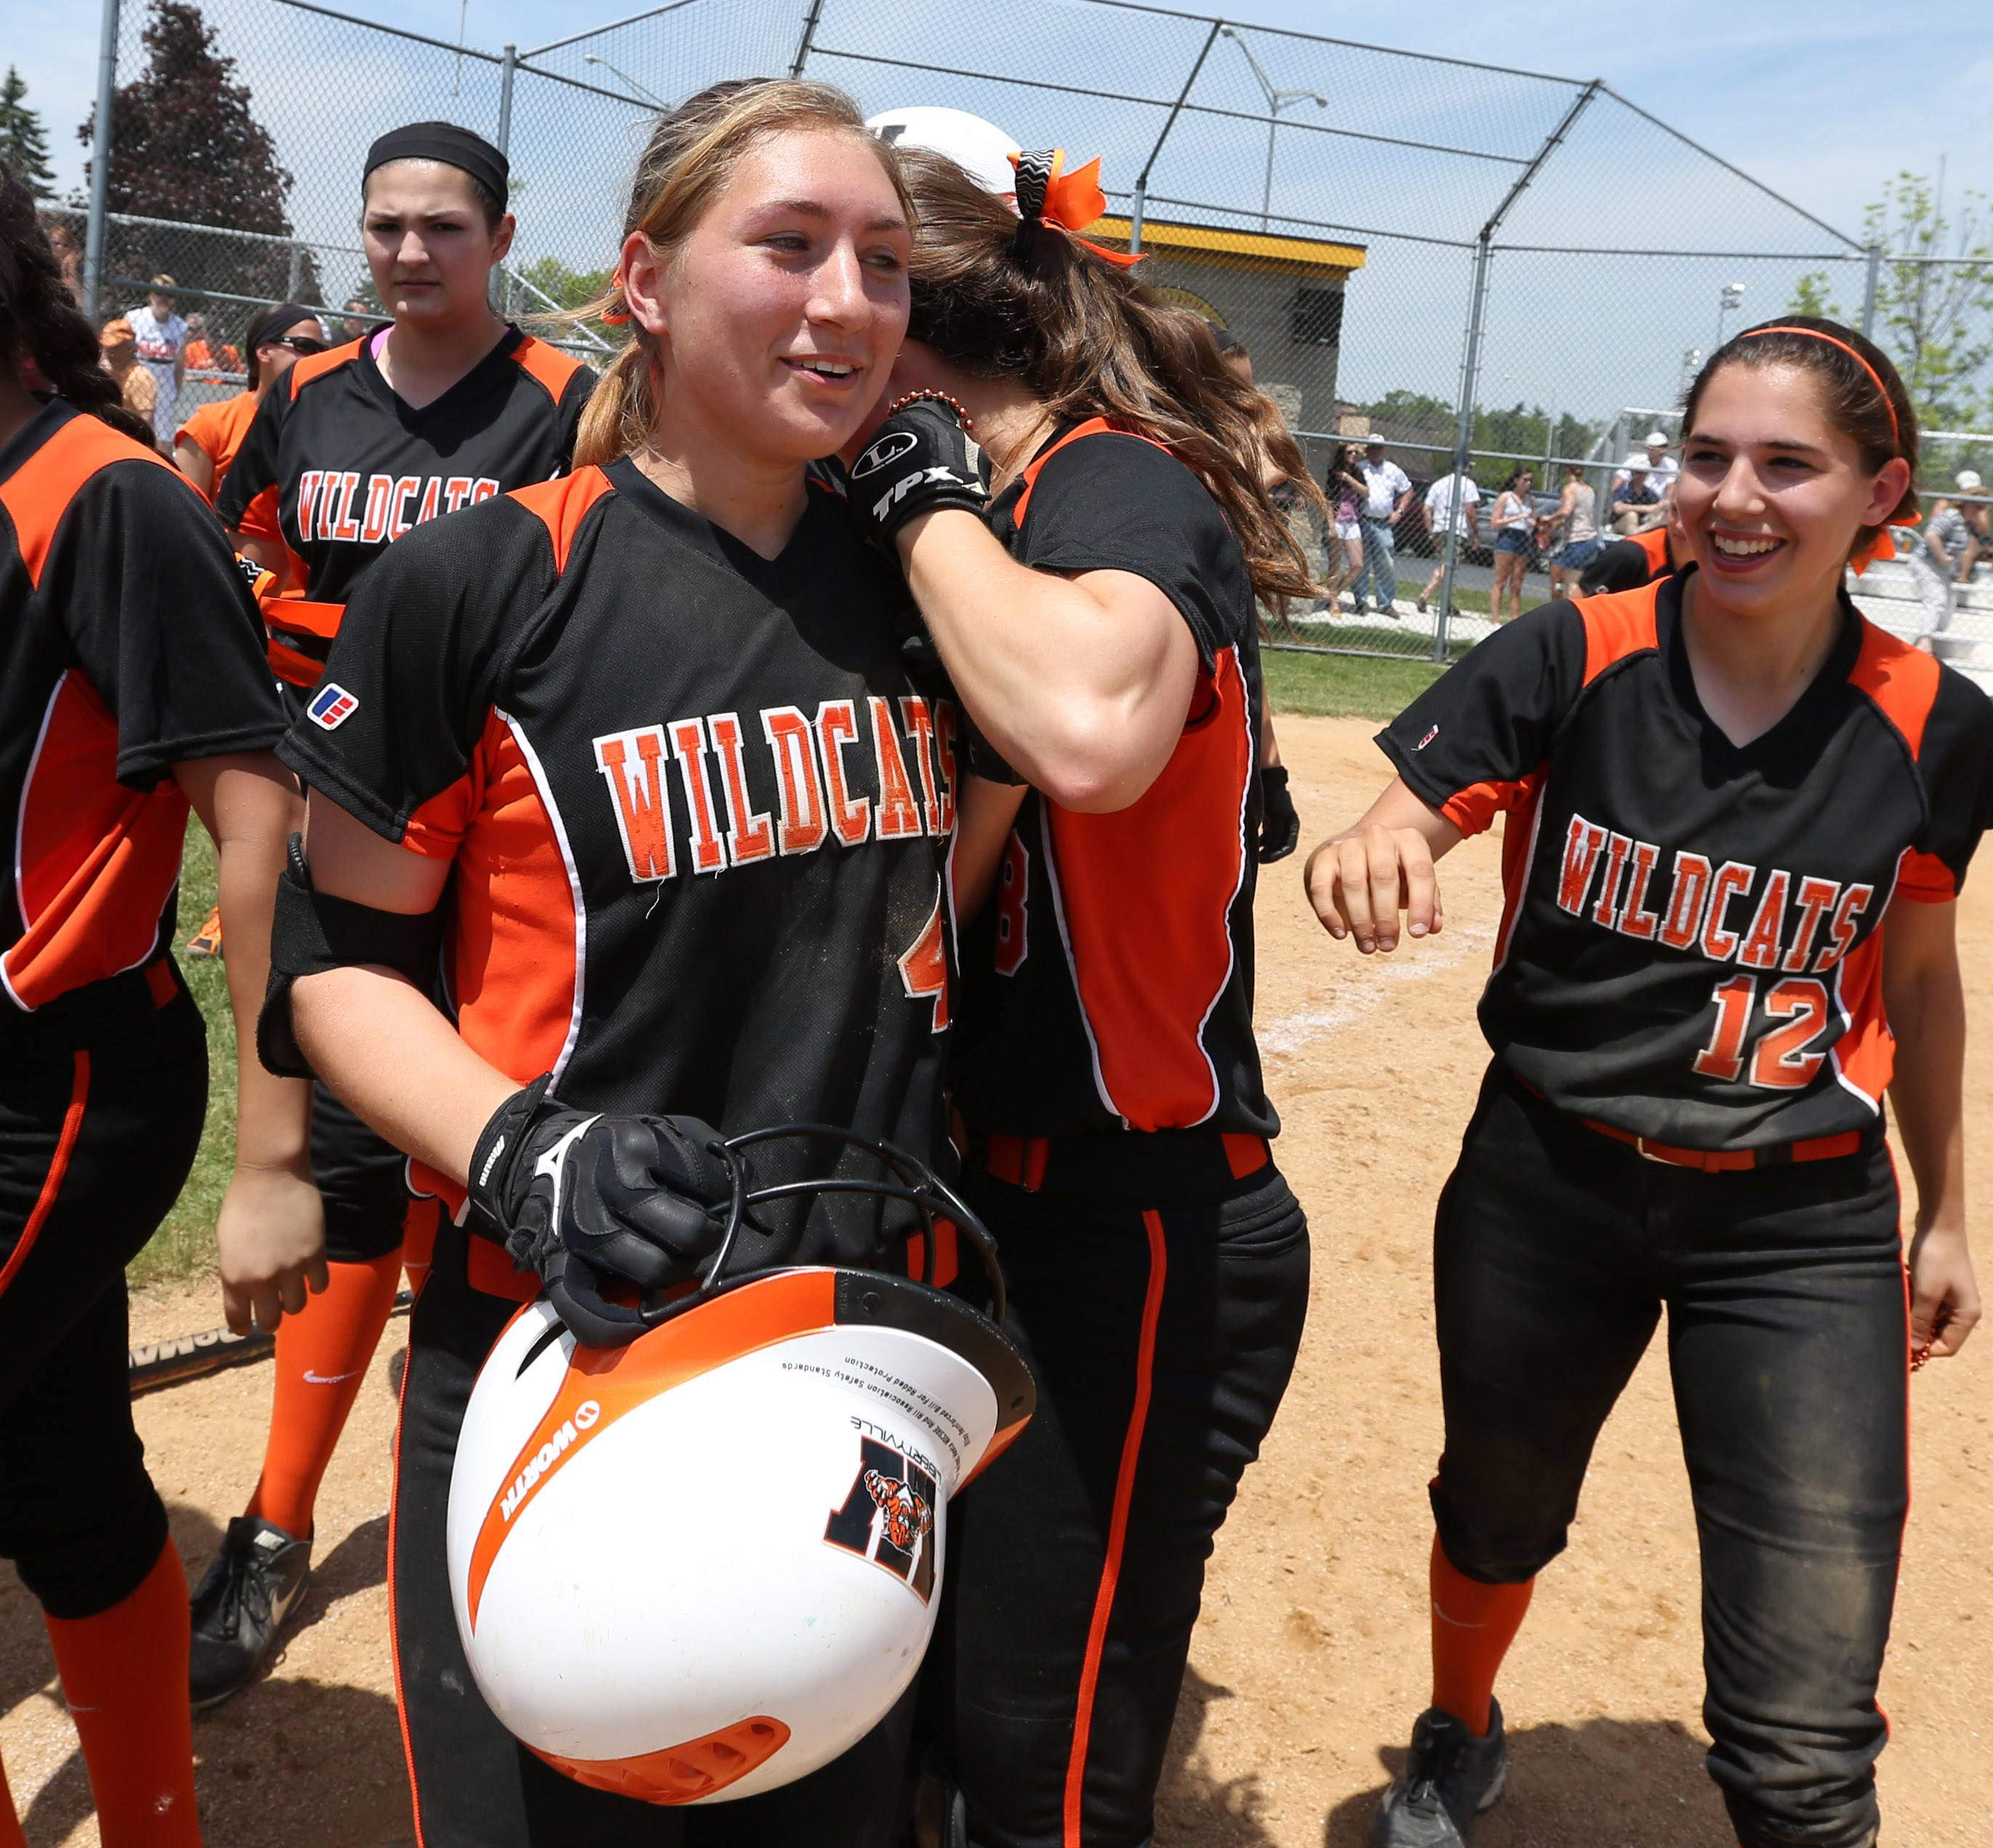 Libertyville's softball team rushes from the dugout to greet Tayler Oberman after her walk-off single against Carmel in the Class 4A Carmel softball regional final Saturday.